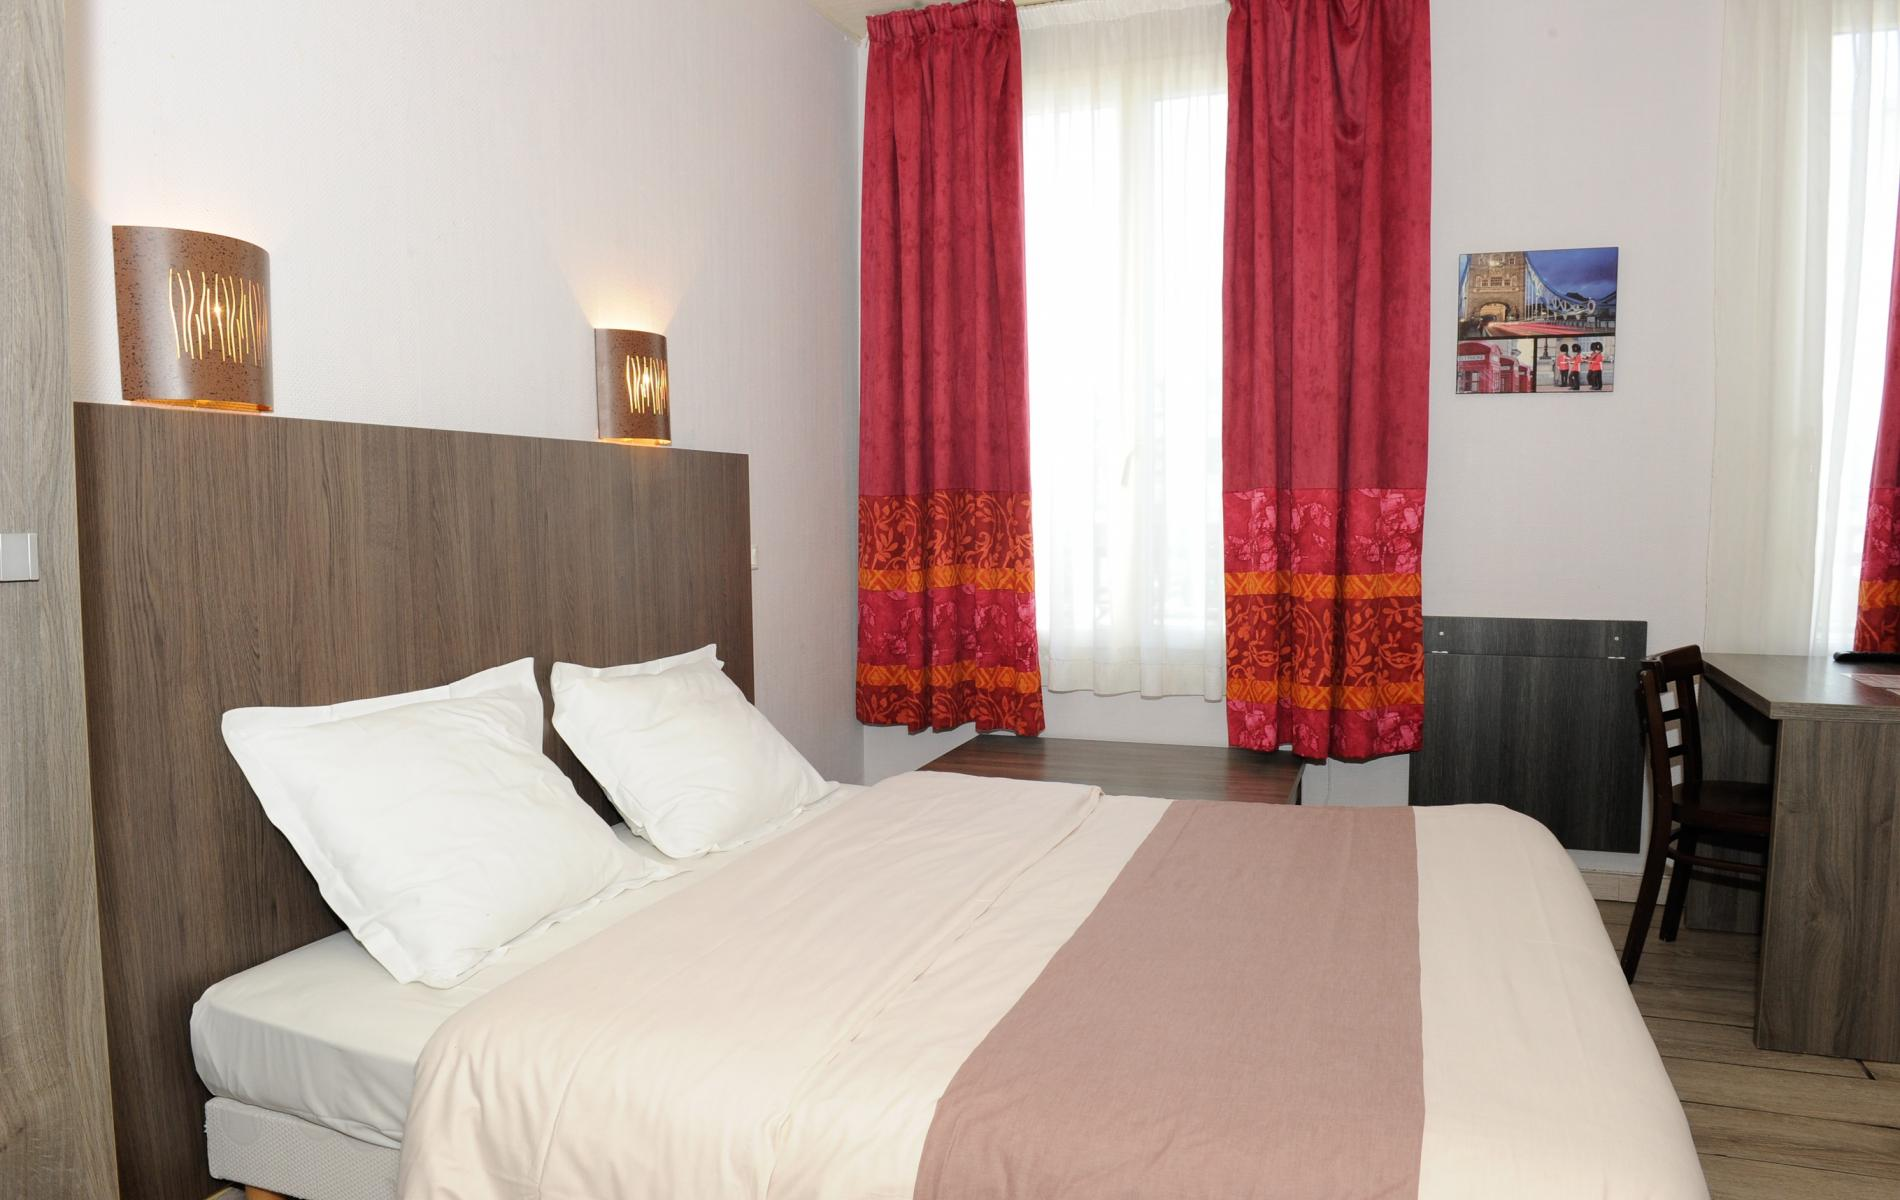 Appart hotel le havre residence hoteliere le havre appart for Appart hotel 95 pas cher